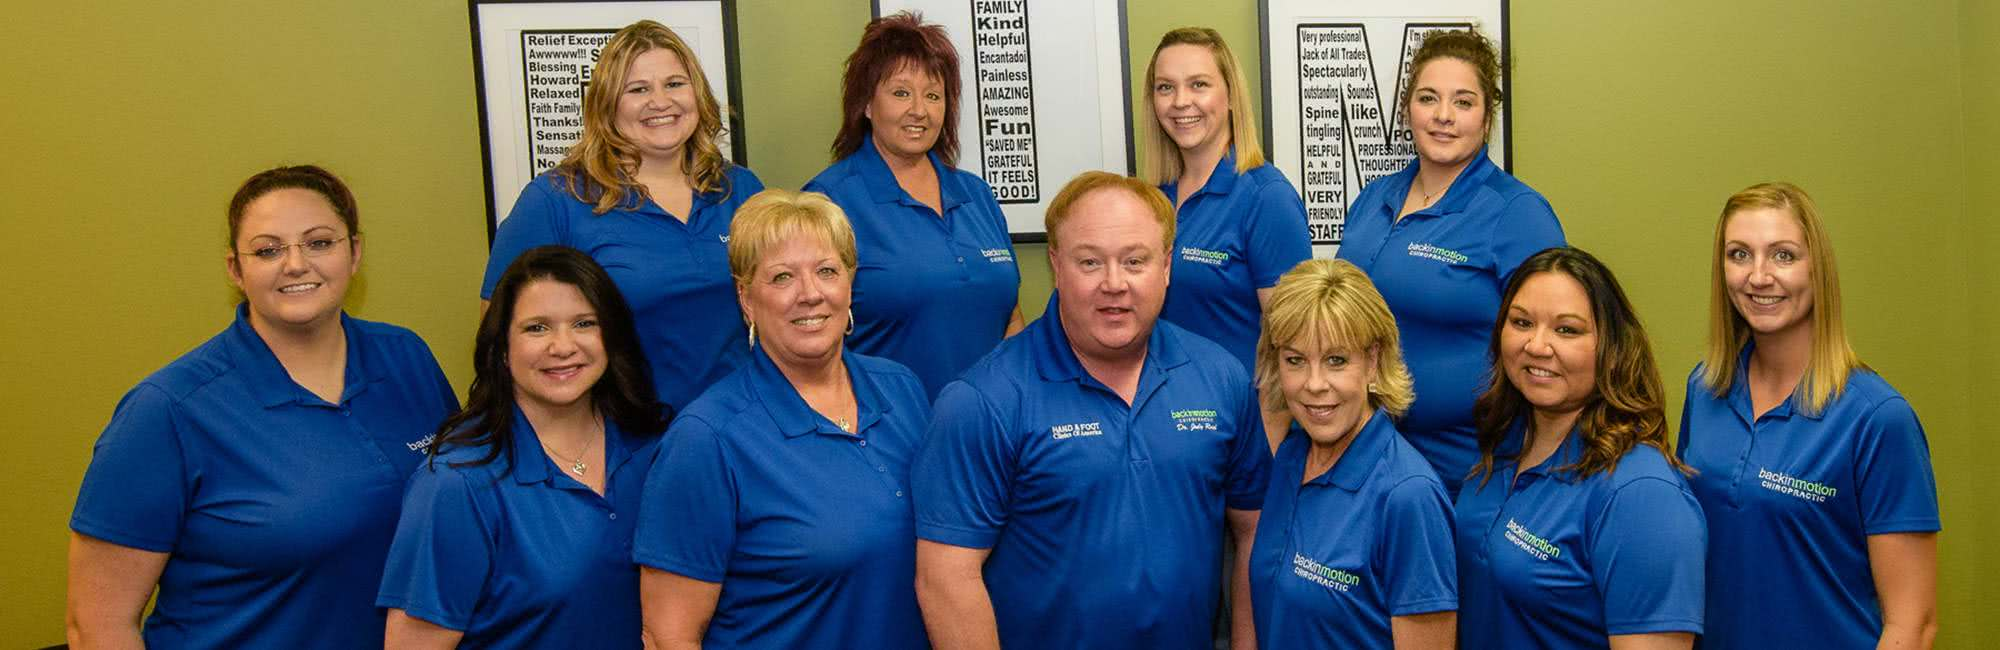 Back In Motion Chiropractic Staff